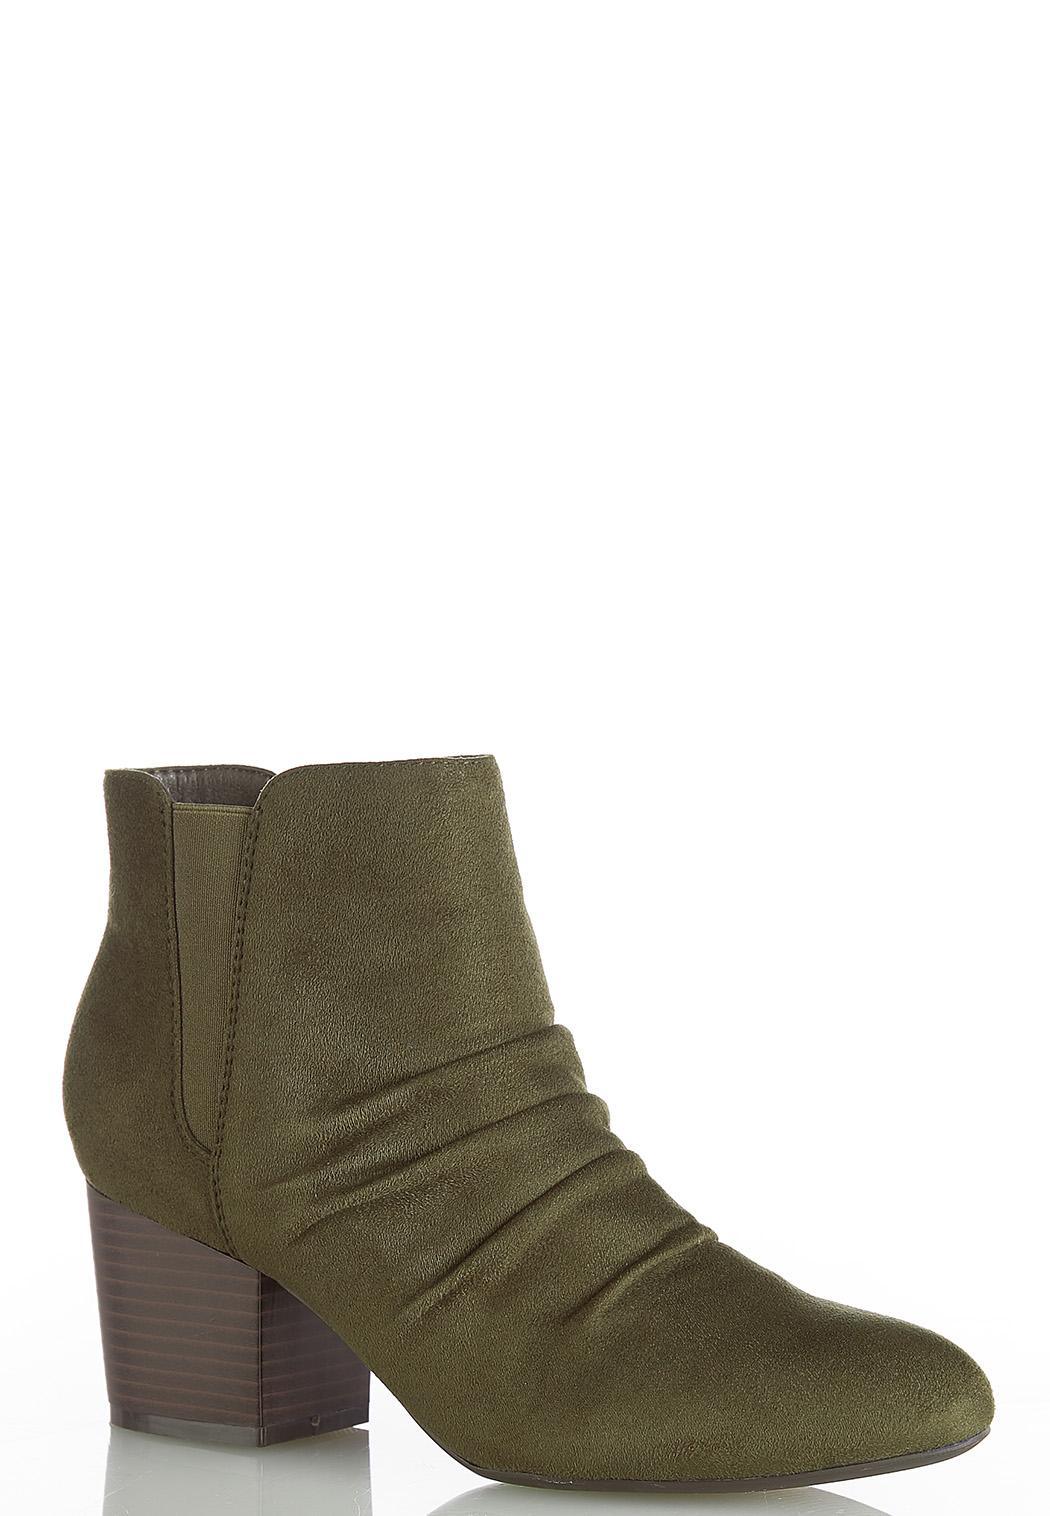 Scrunchie Ankle Boots